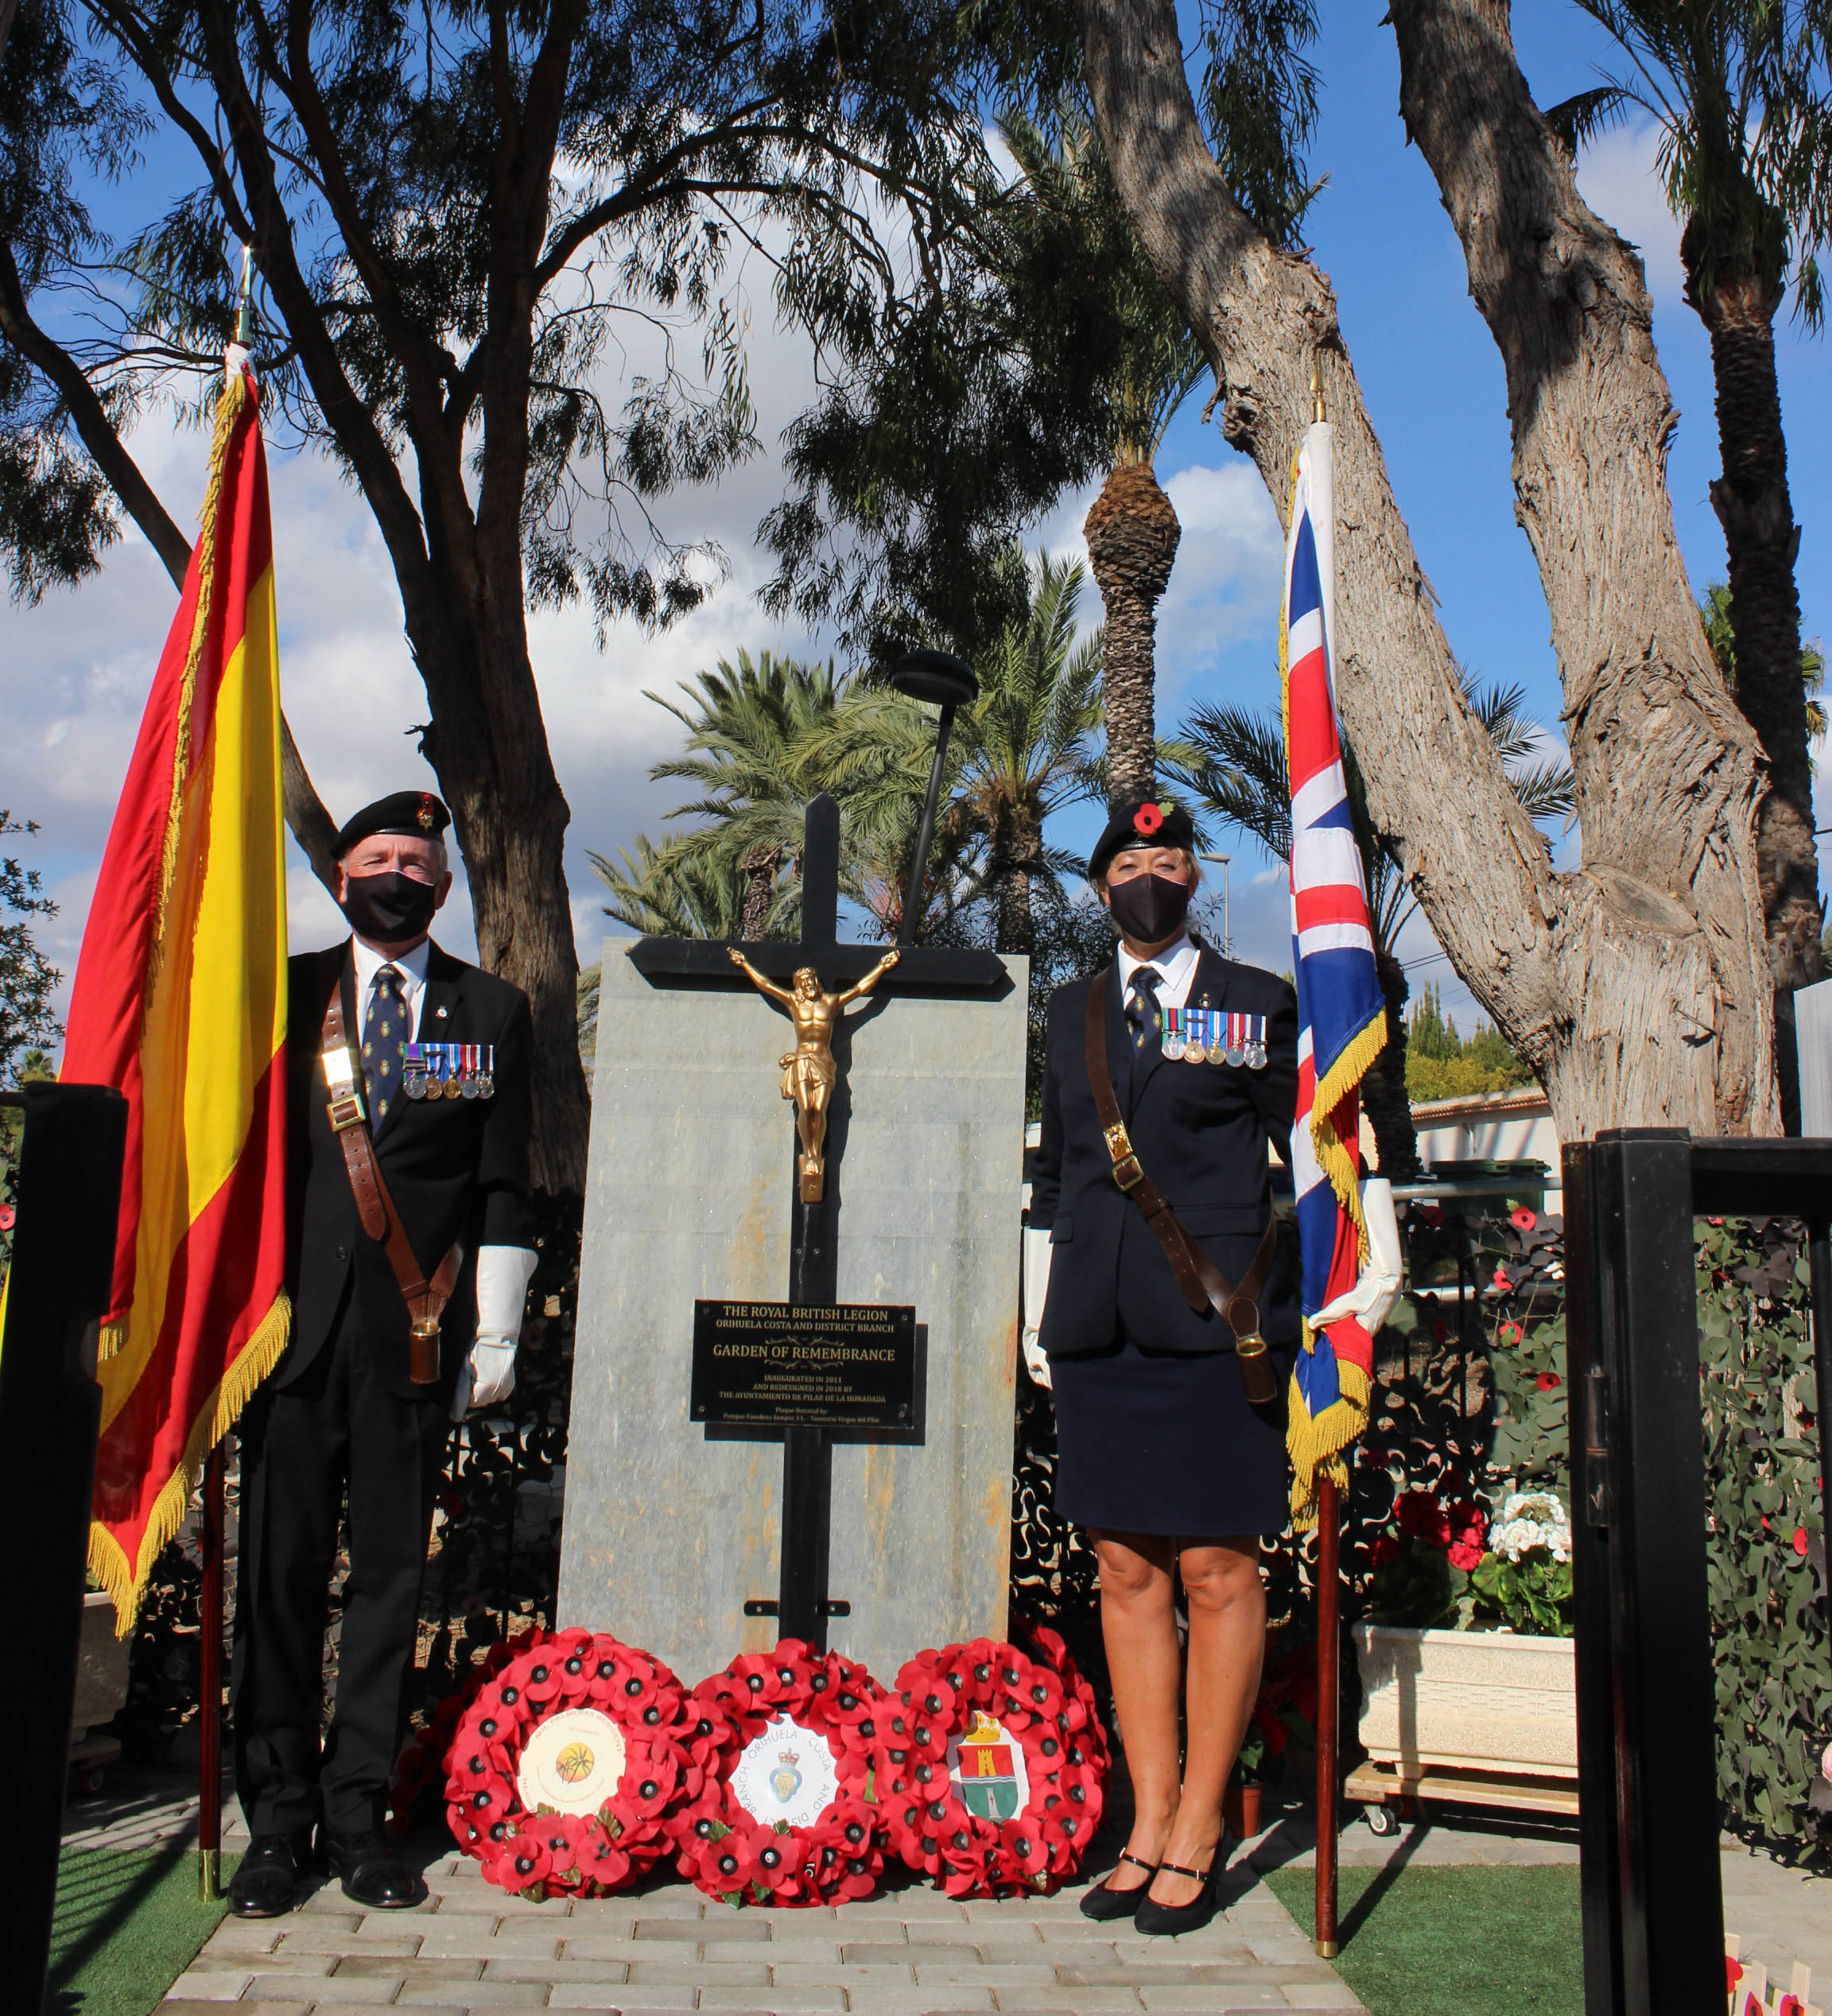 Orihuela Costa: A 'scaled down' service was held outdoors in Mil Palmeras